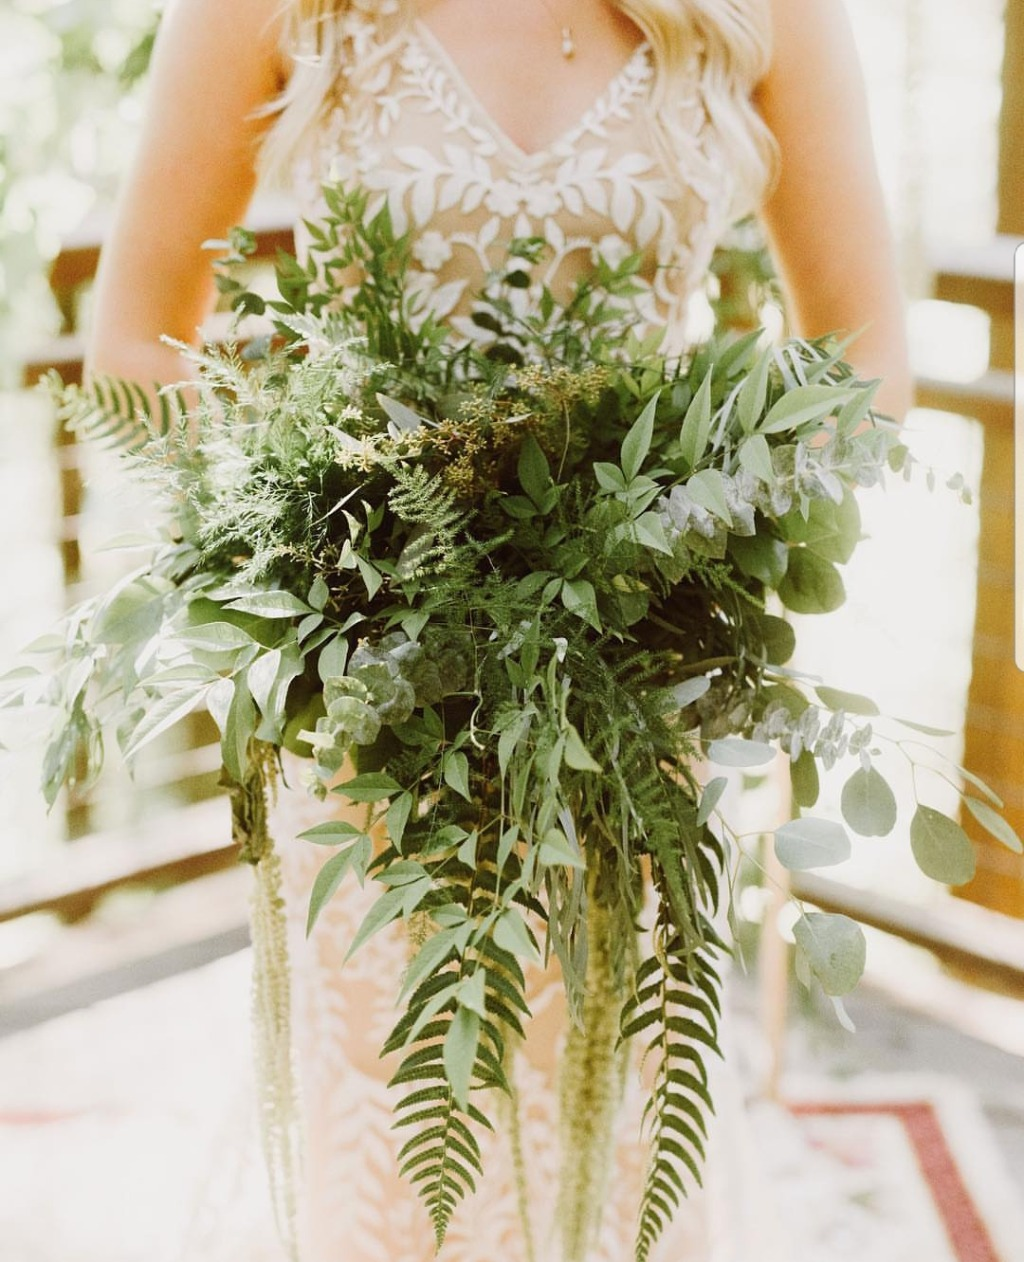 Texture and greenery can be absolutely stunning!